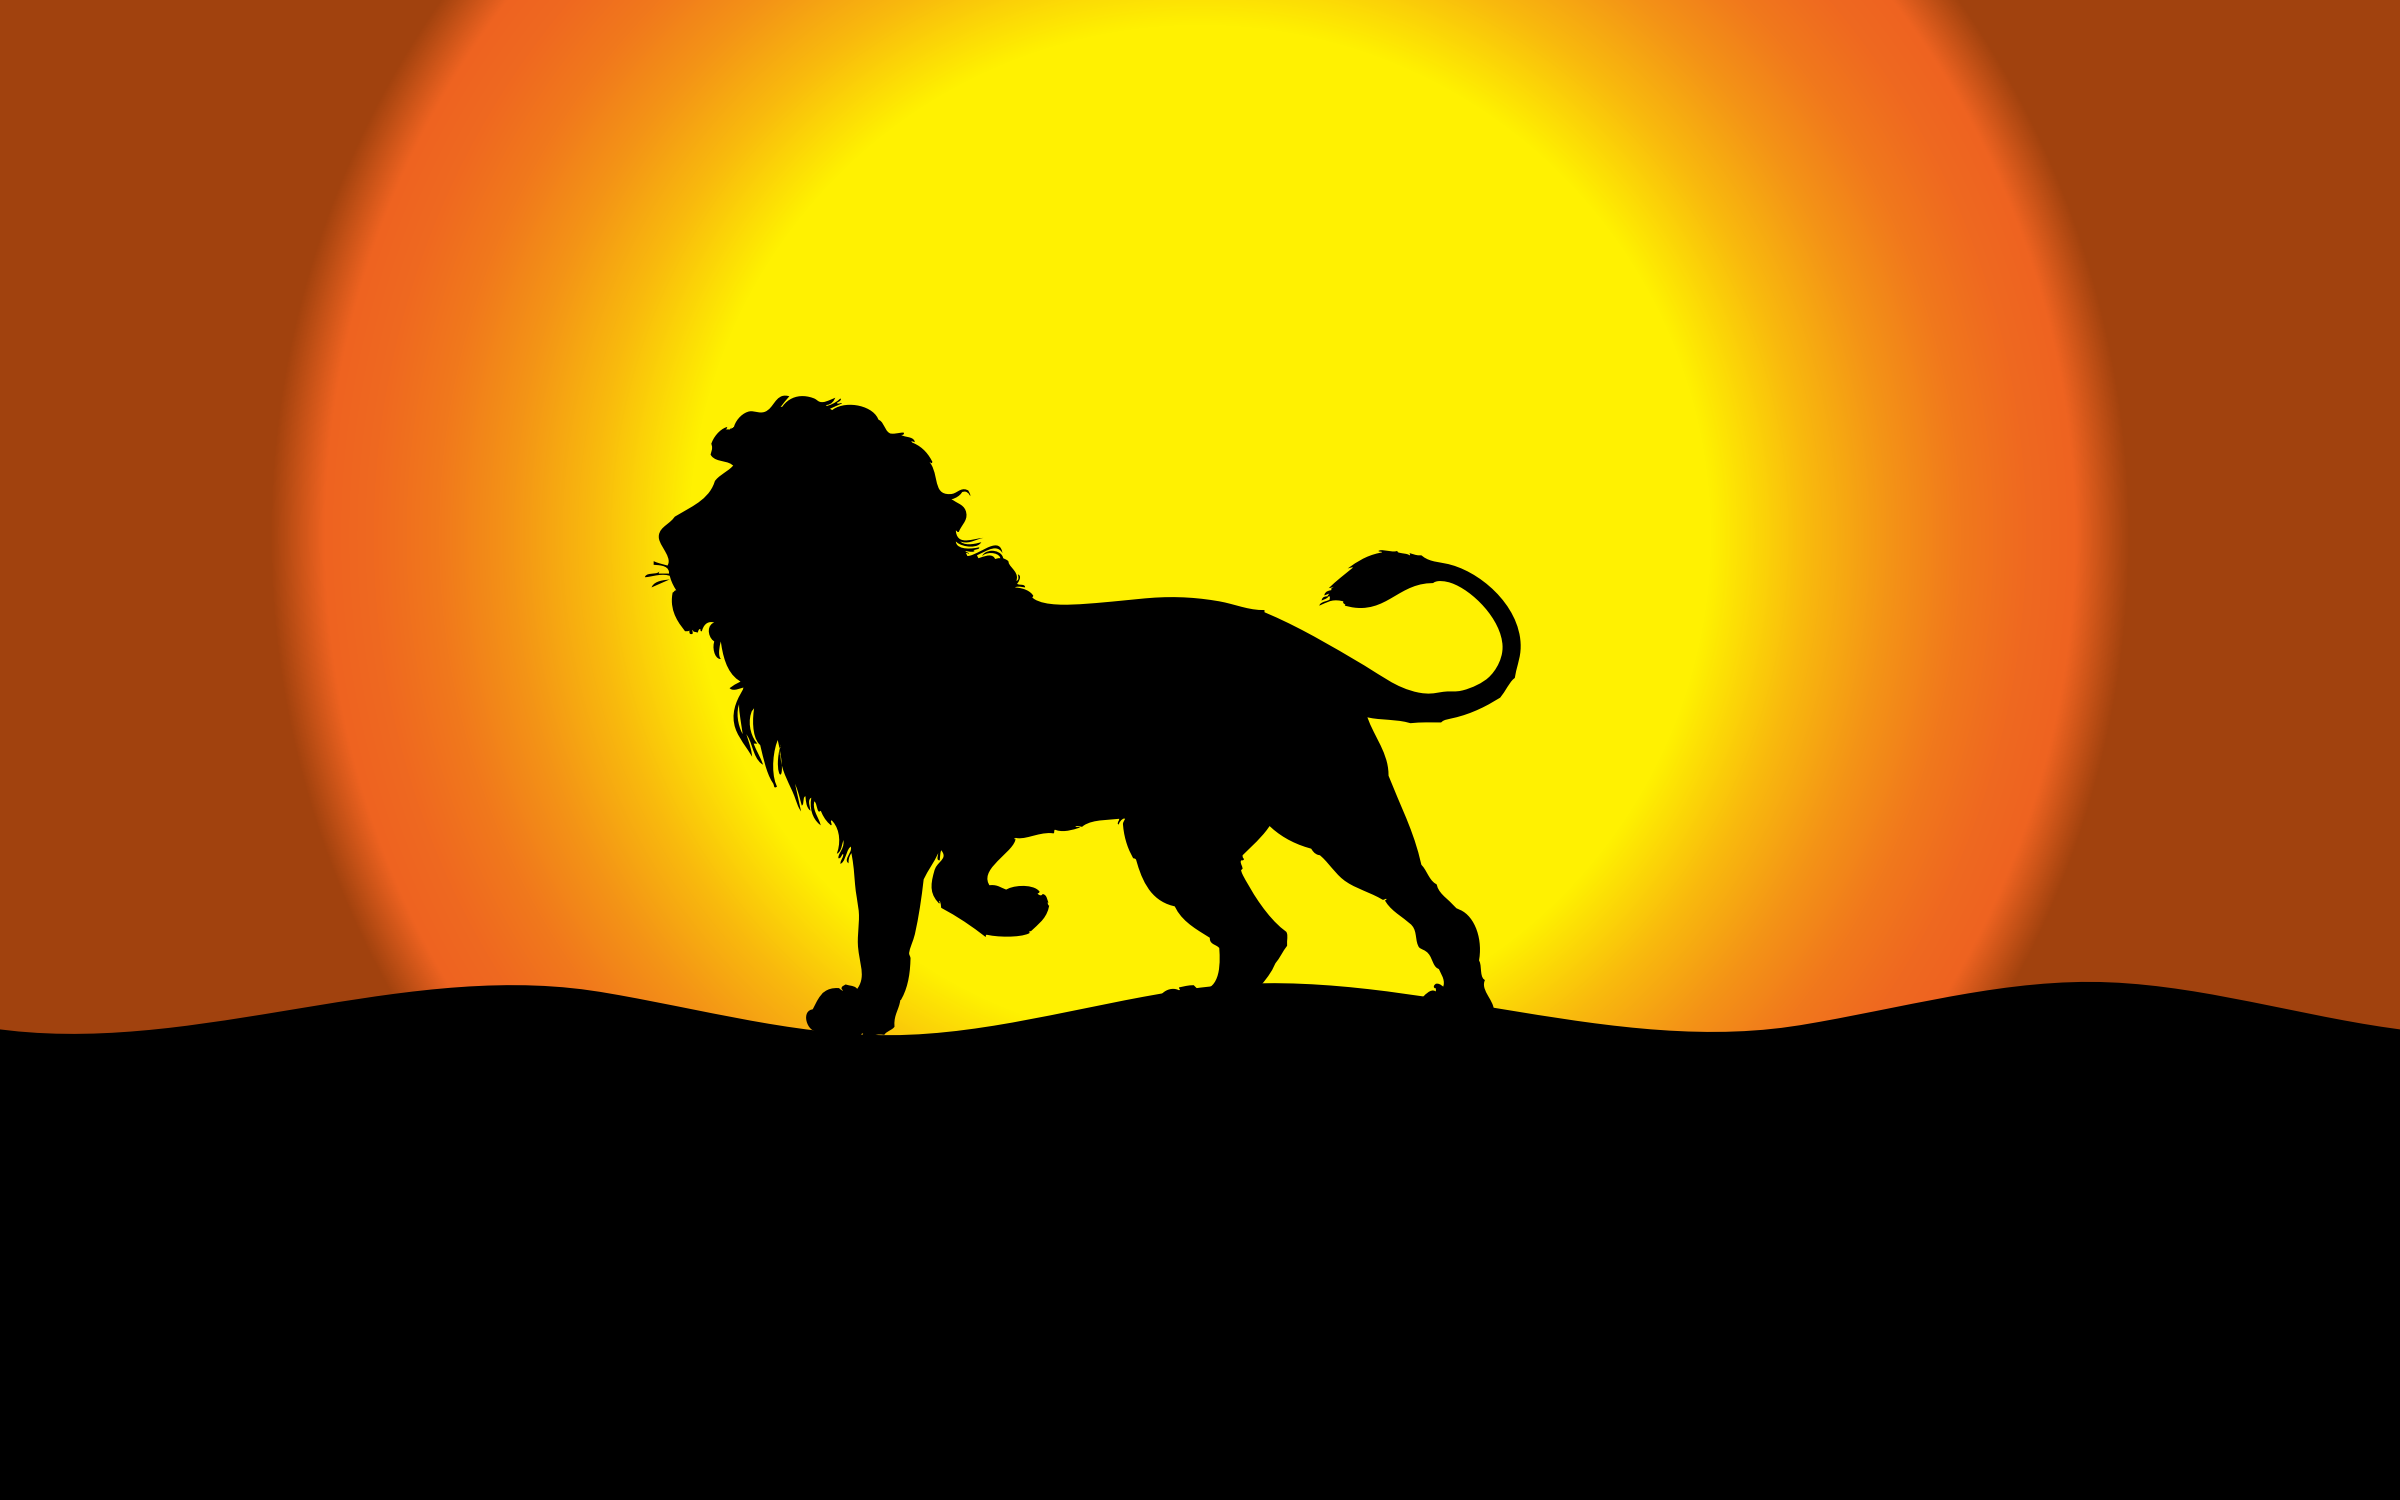 Dusk clipart evening time Dusk Clipart Dusk Silhouette Lion